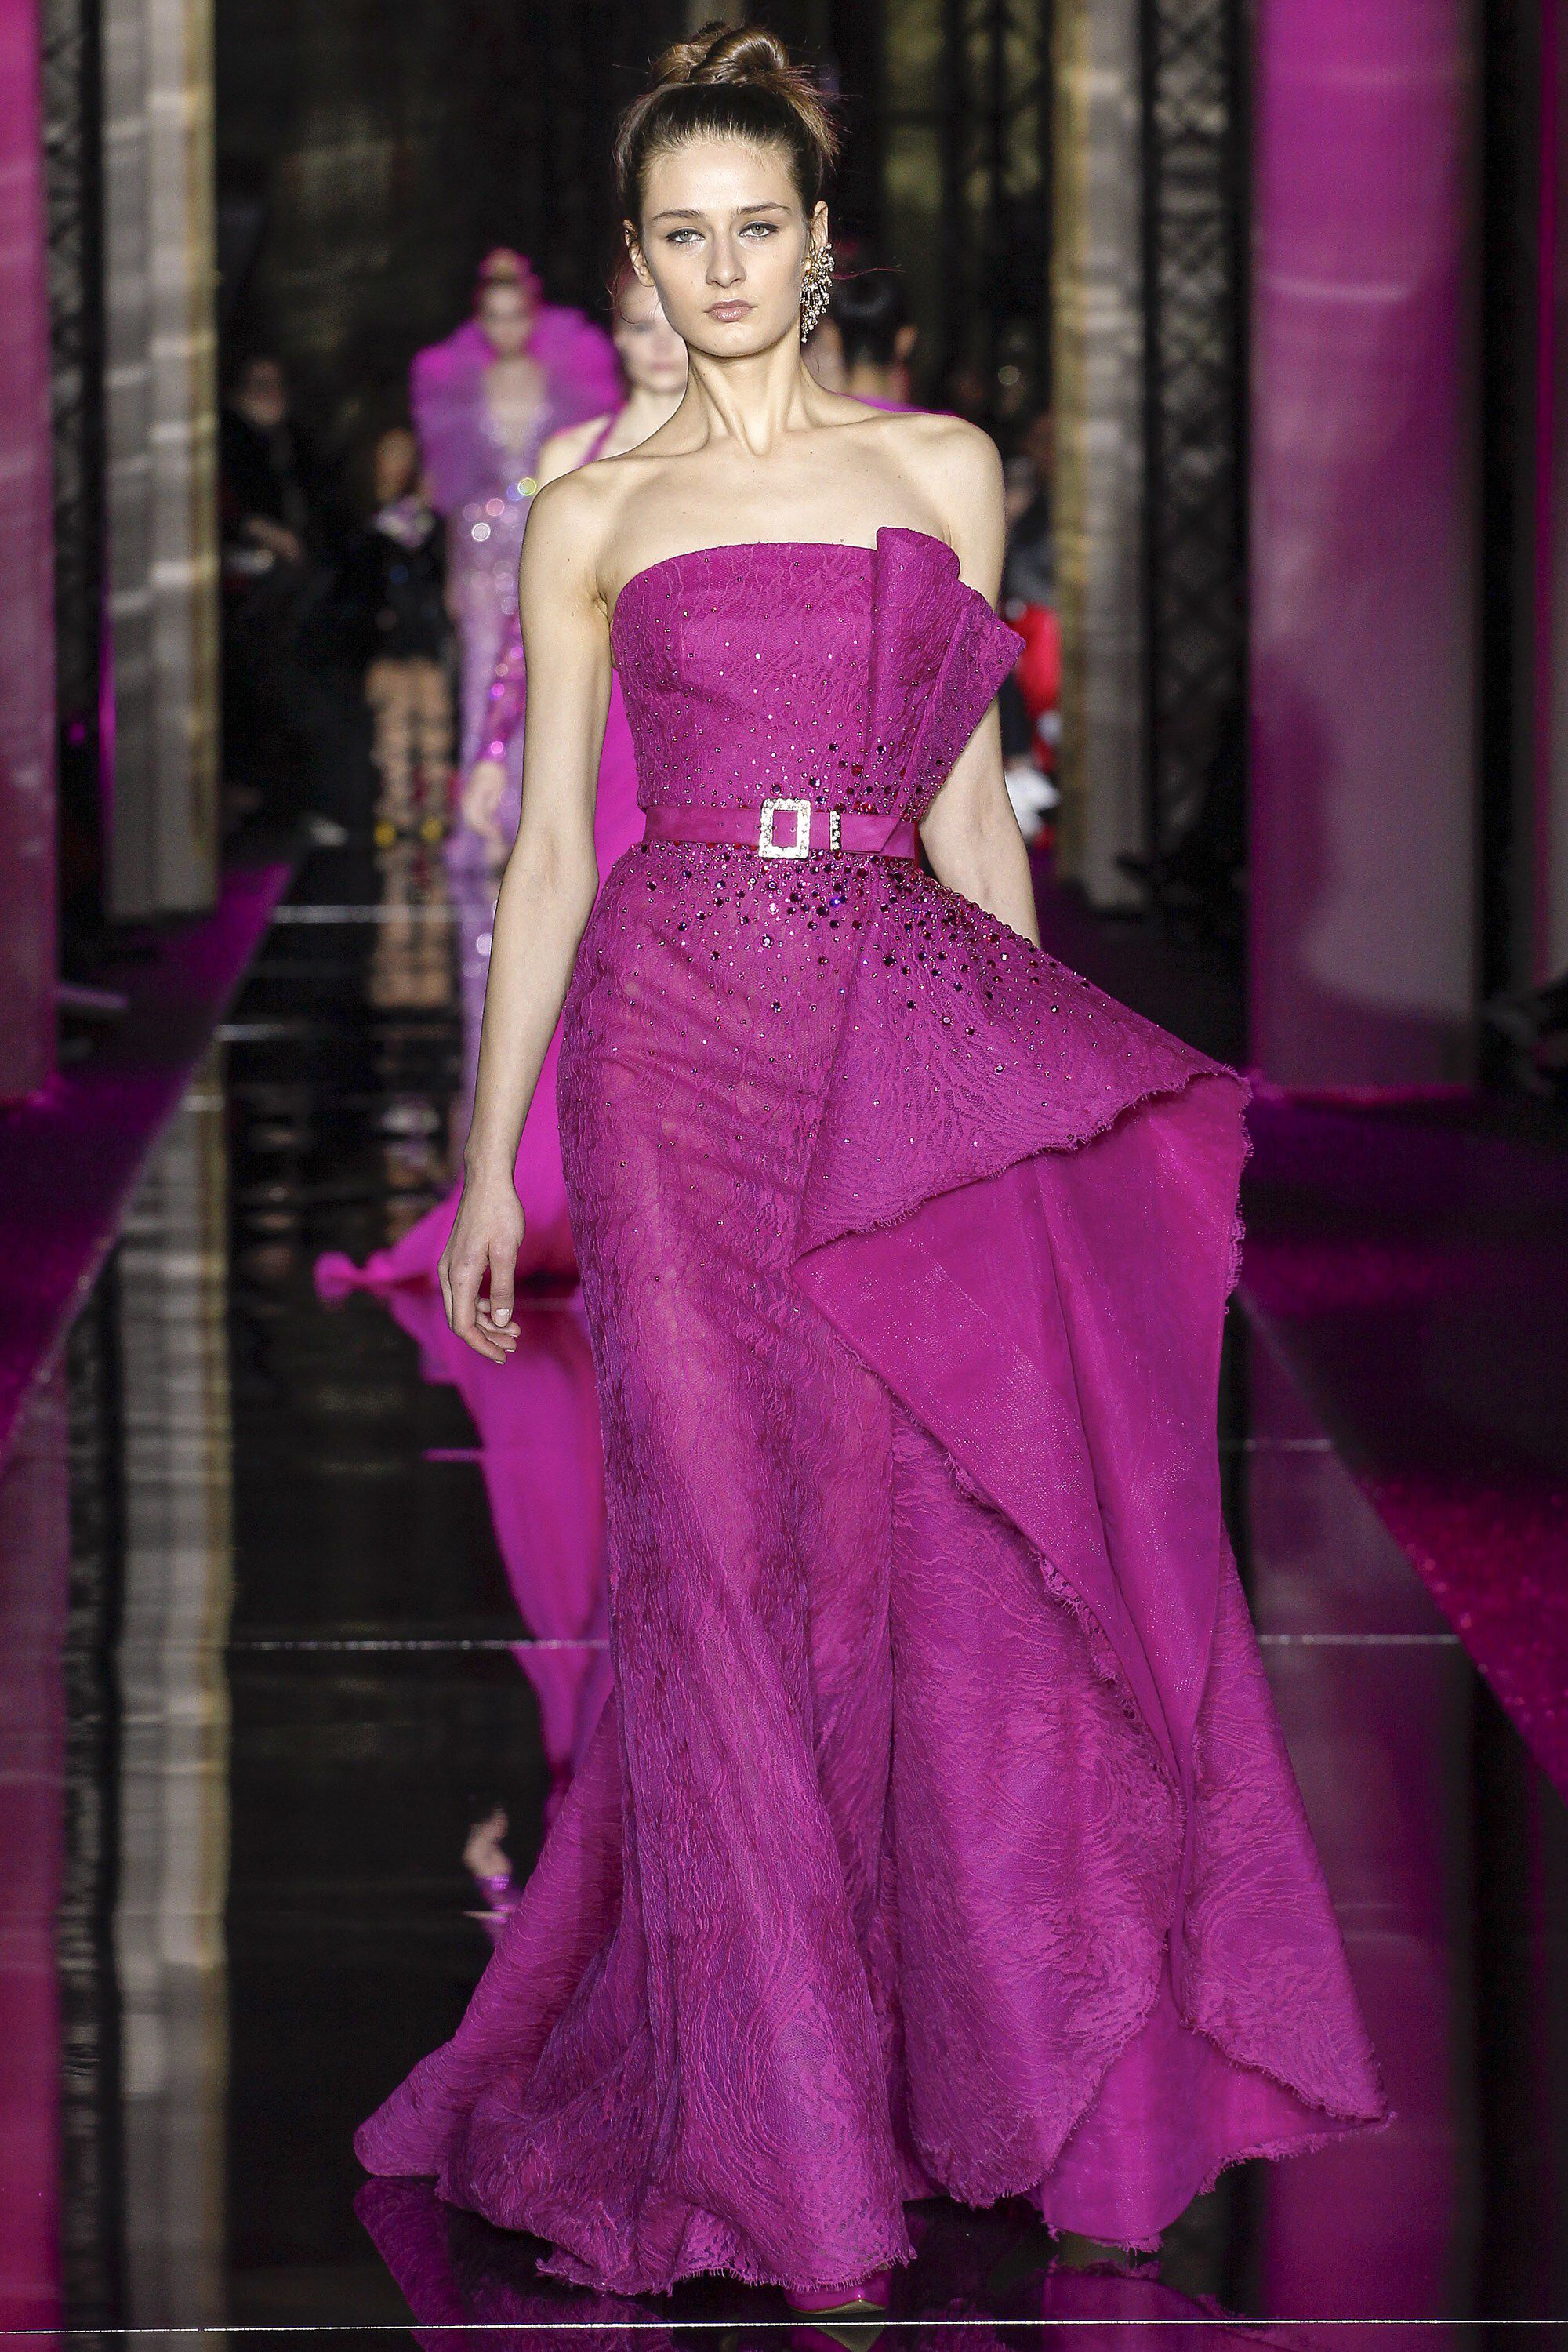 Dorable Zuhair Murad Vestidos De Dama De Honor Ideas Ornamento ...